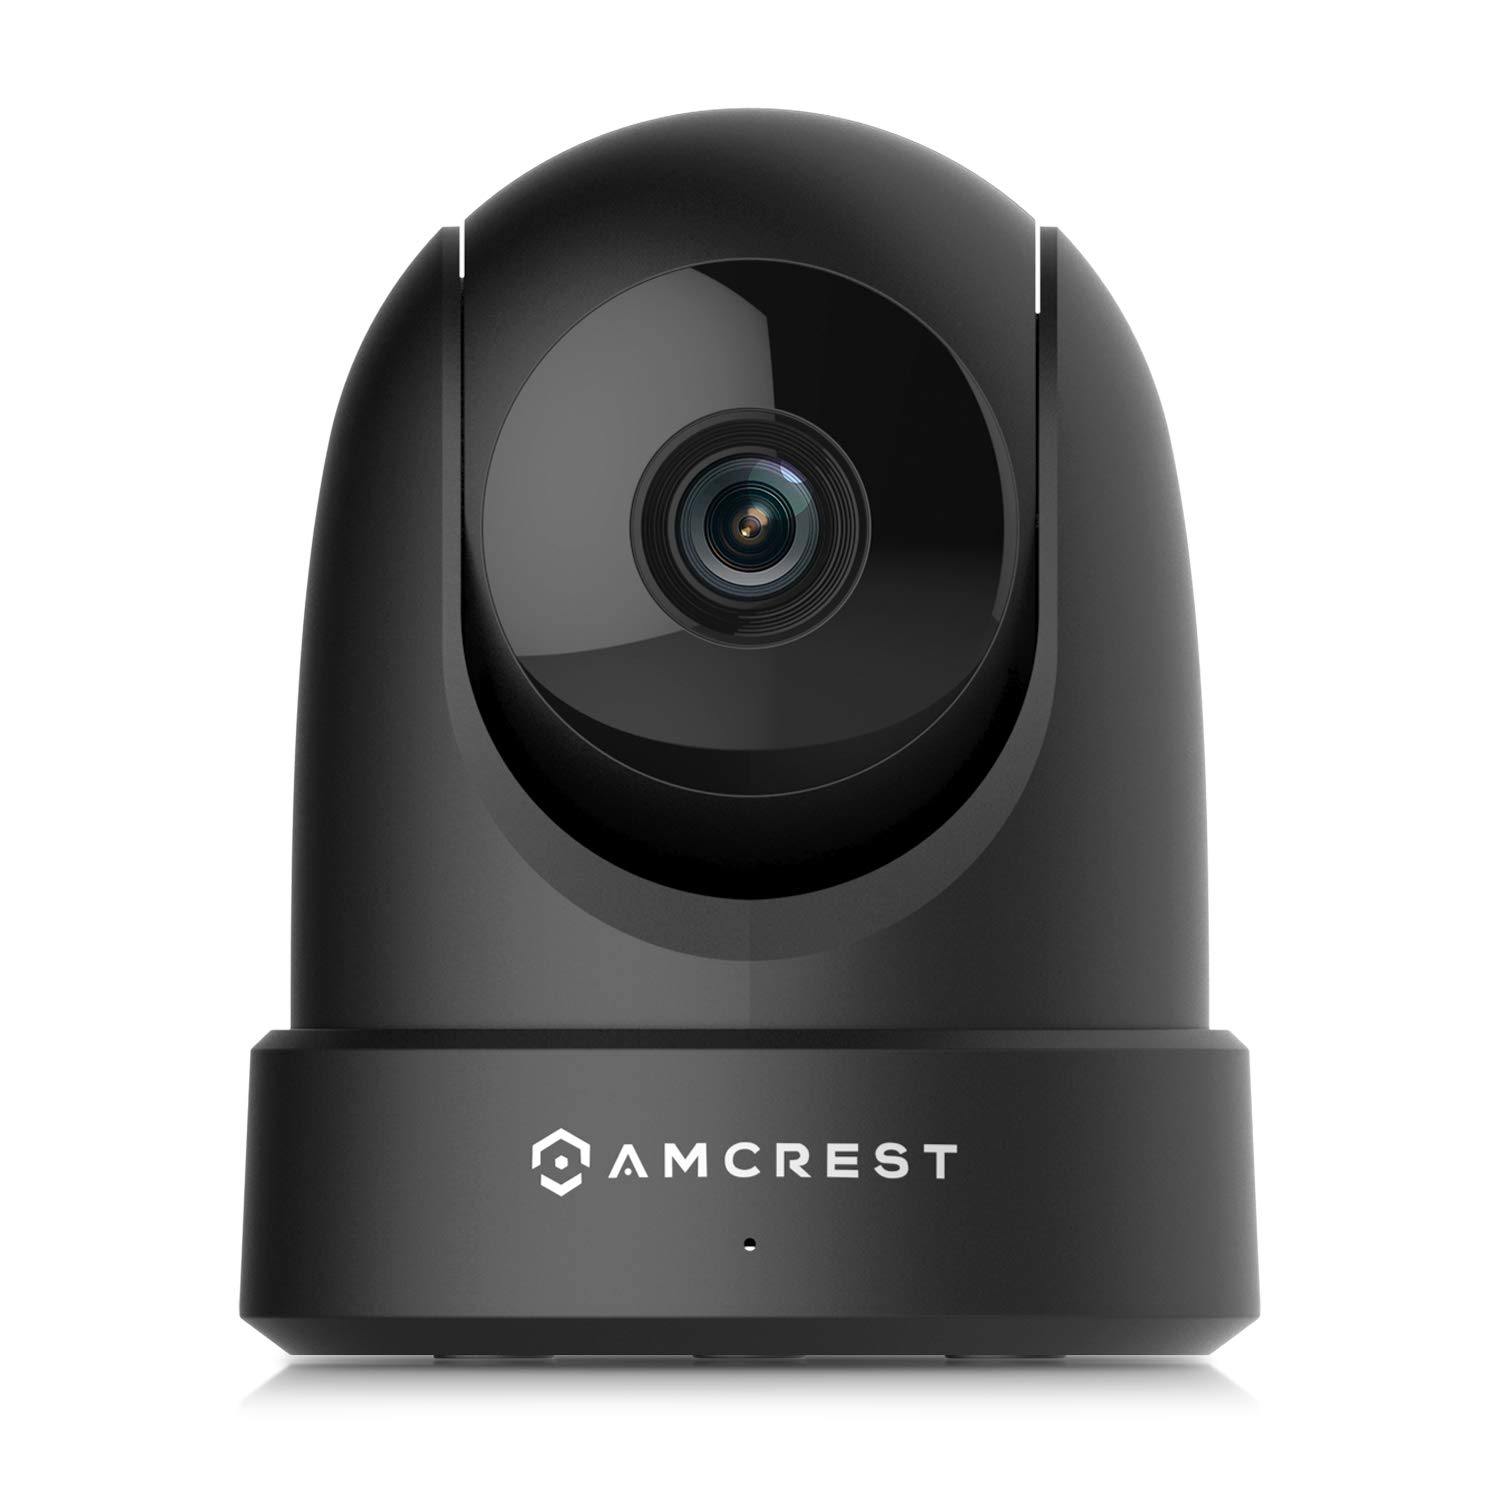 Amcrest 4MP UltraHD Indoor WiFi Camera, Security IP Camera with Pan/Tilt, Two-Way Audio, Night Vision, Remote Viewing, Dual-Band 5ghz/2.4ghz, 4-Megapixel @~20FPS, Wide 120° FOV, IP4M-1051B (Black) by Amcrest